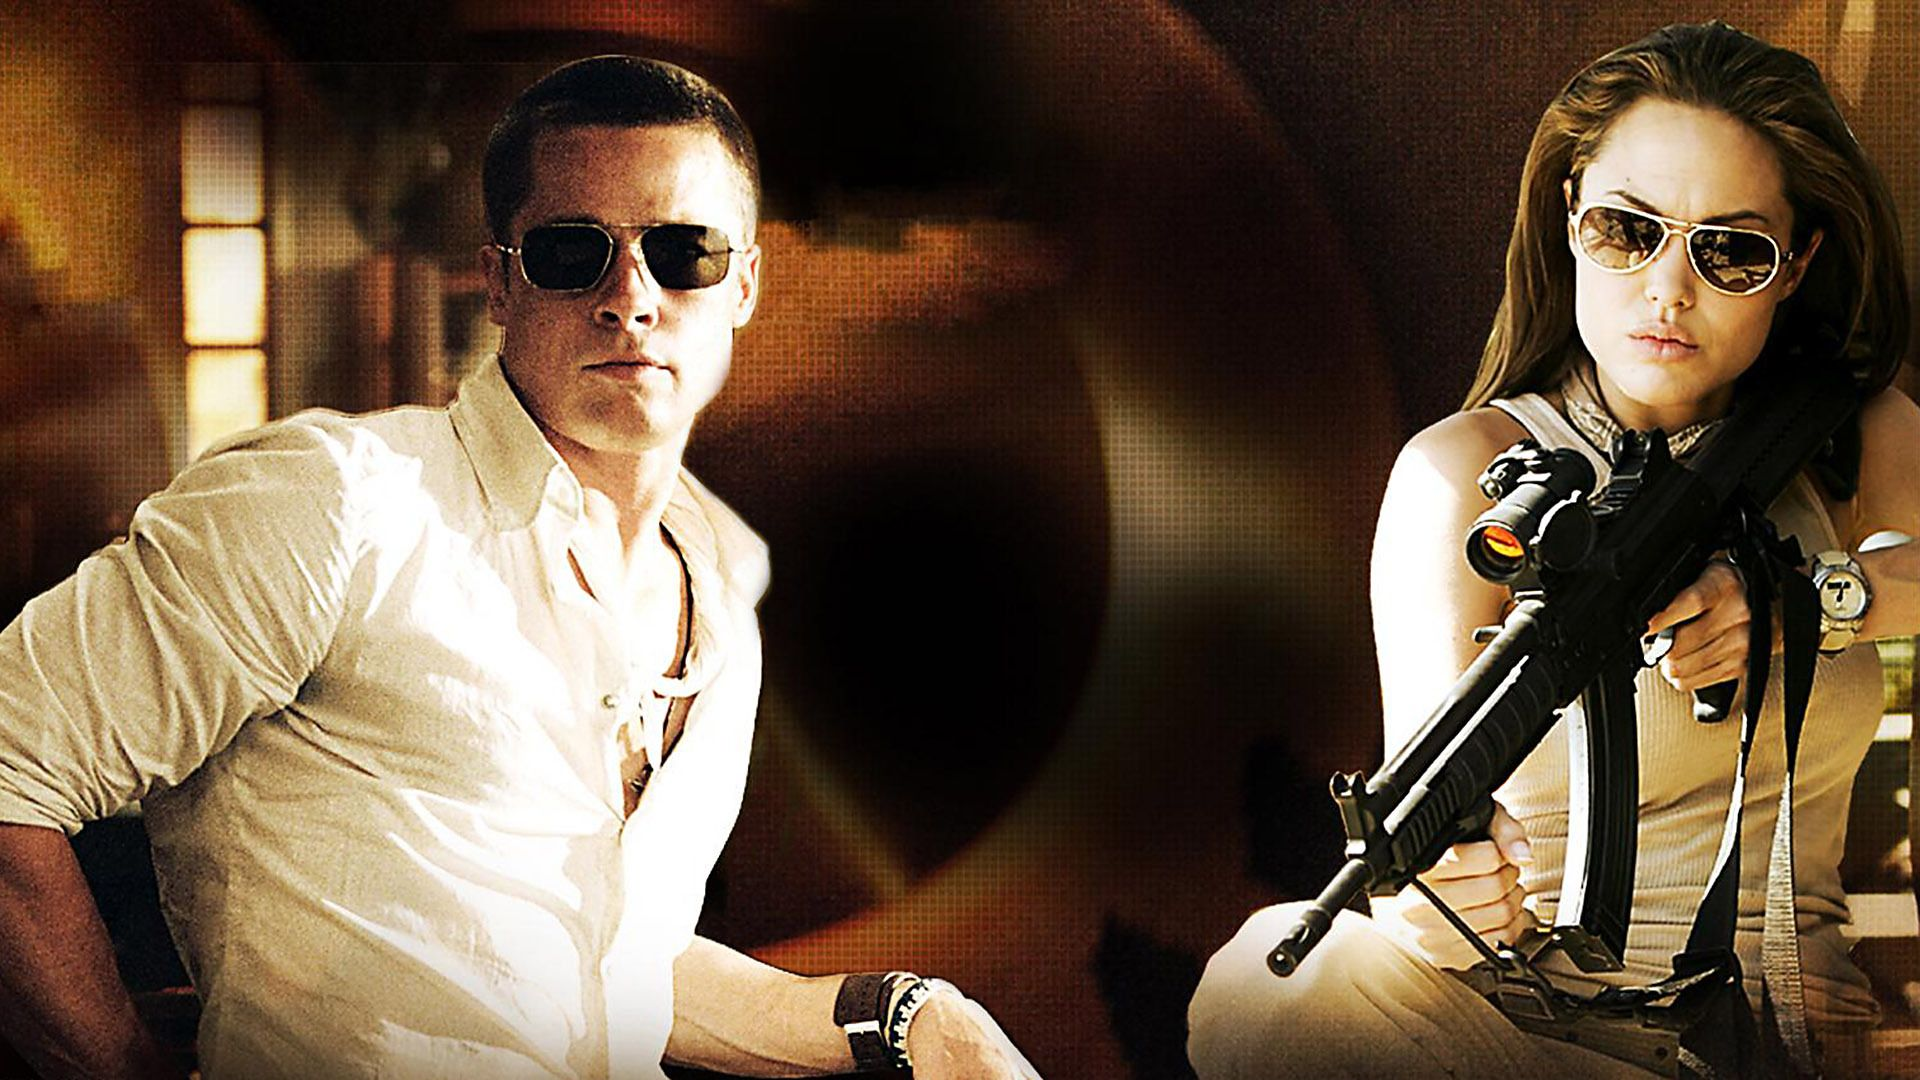 Images of Mr. & Mrs. Smith | 1920x1080